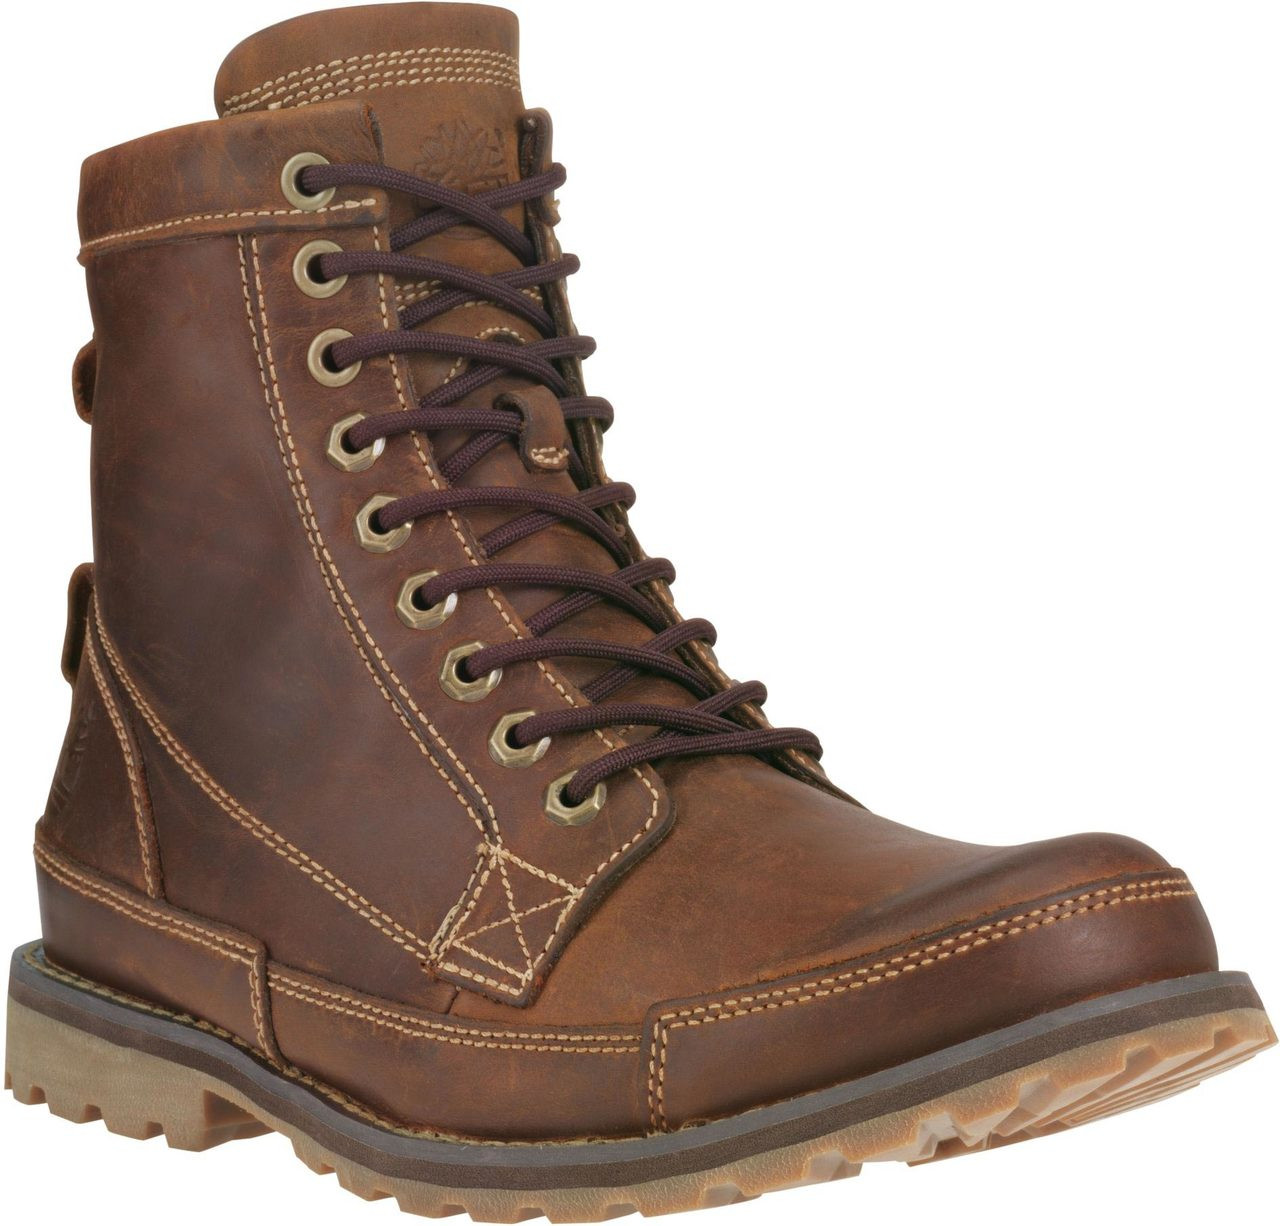 Welcome To Timberland Boots Outlet Store,We Offer Cheap Timberland Boots,Timberland Shoes For Men Women And insurancecompanies.cf Every Pair Is Eye-catching,Every Pair Is .